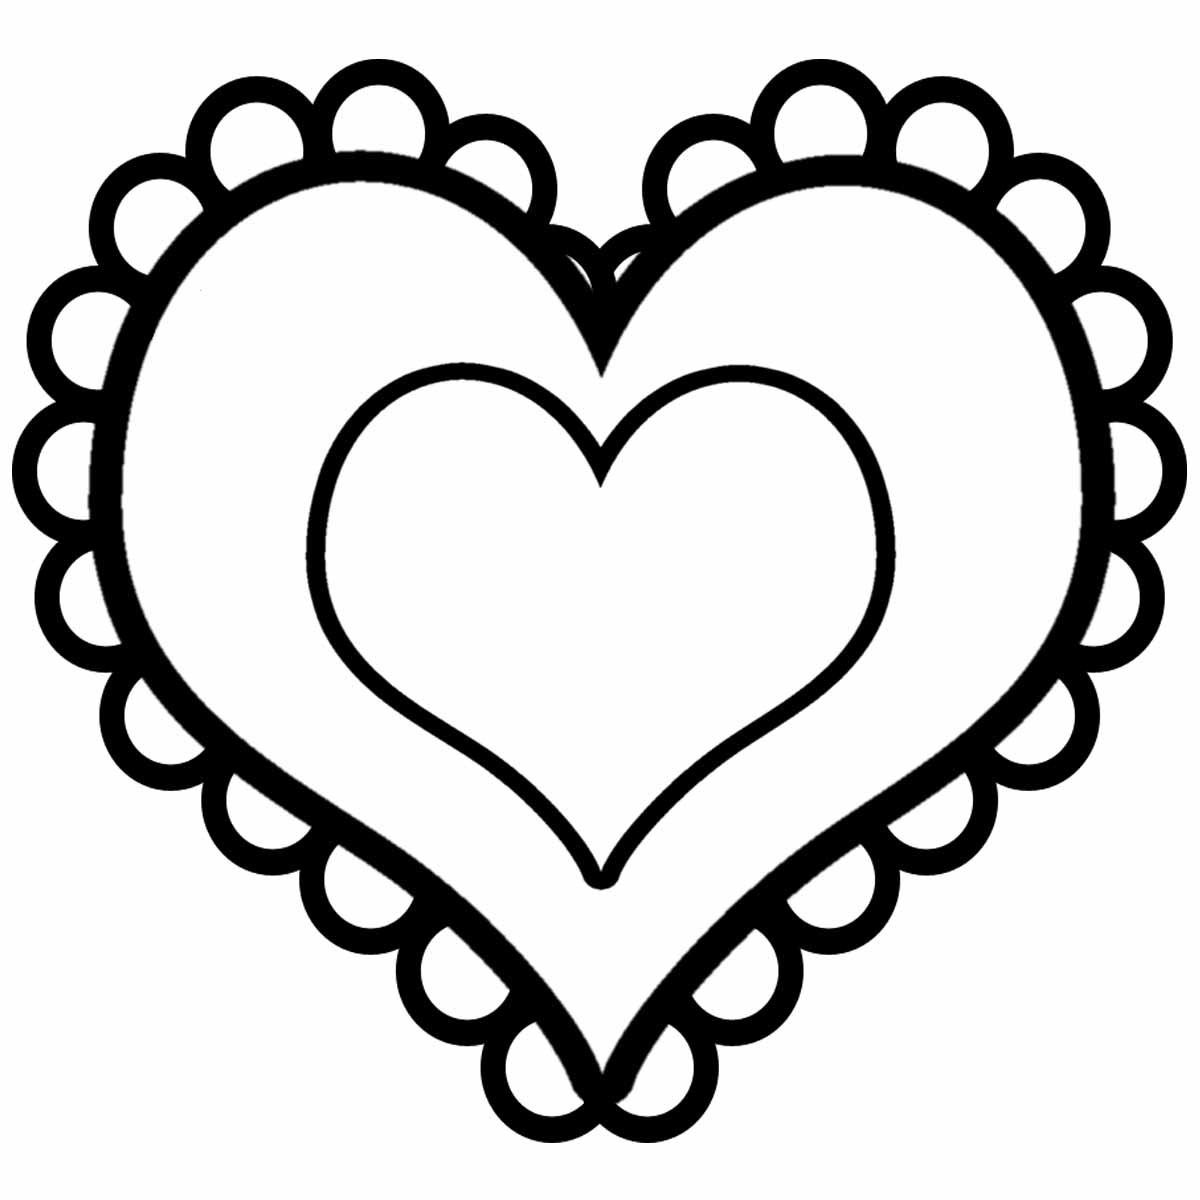 love hearts coloring pages - photo#30